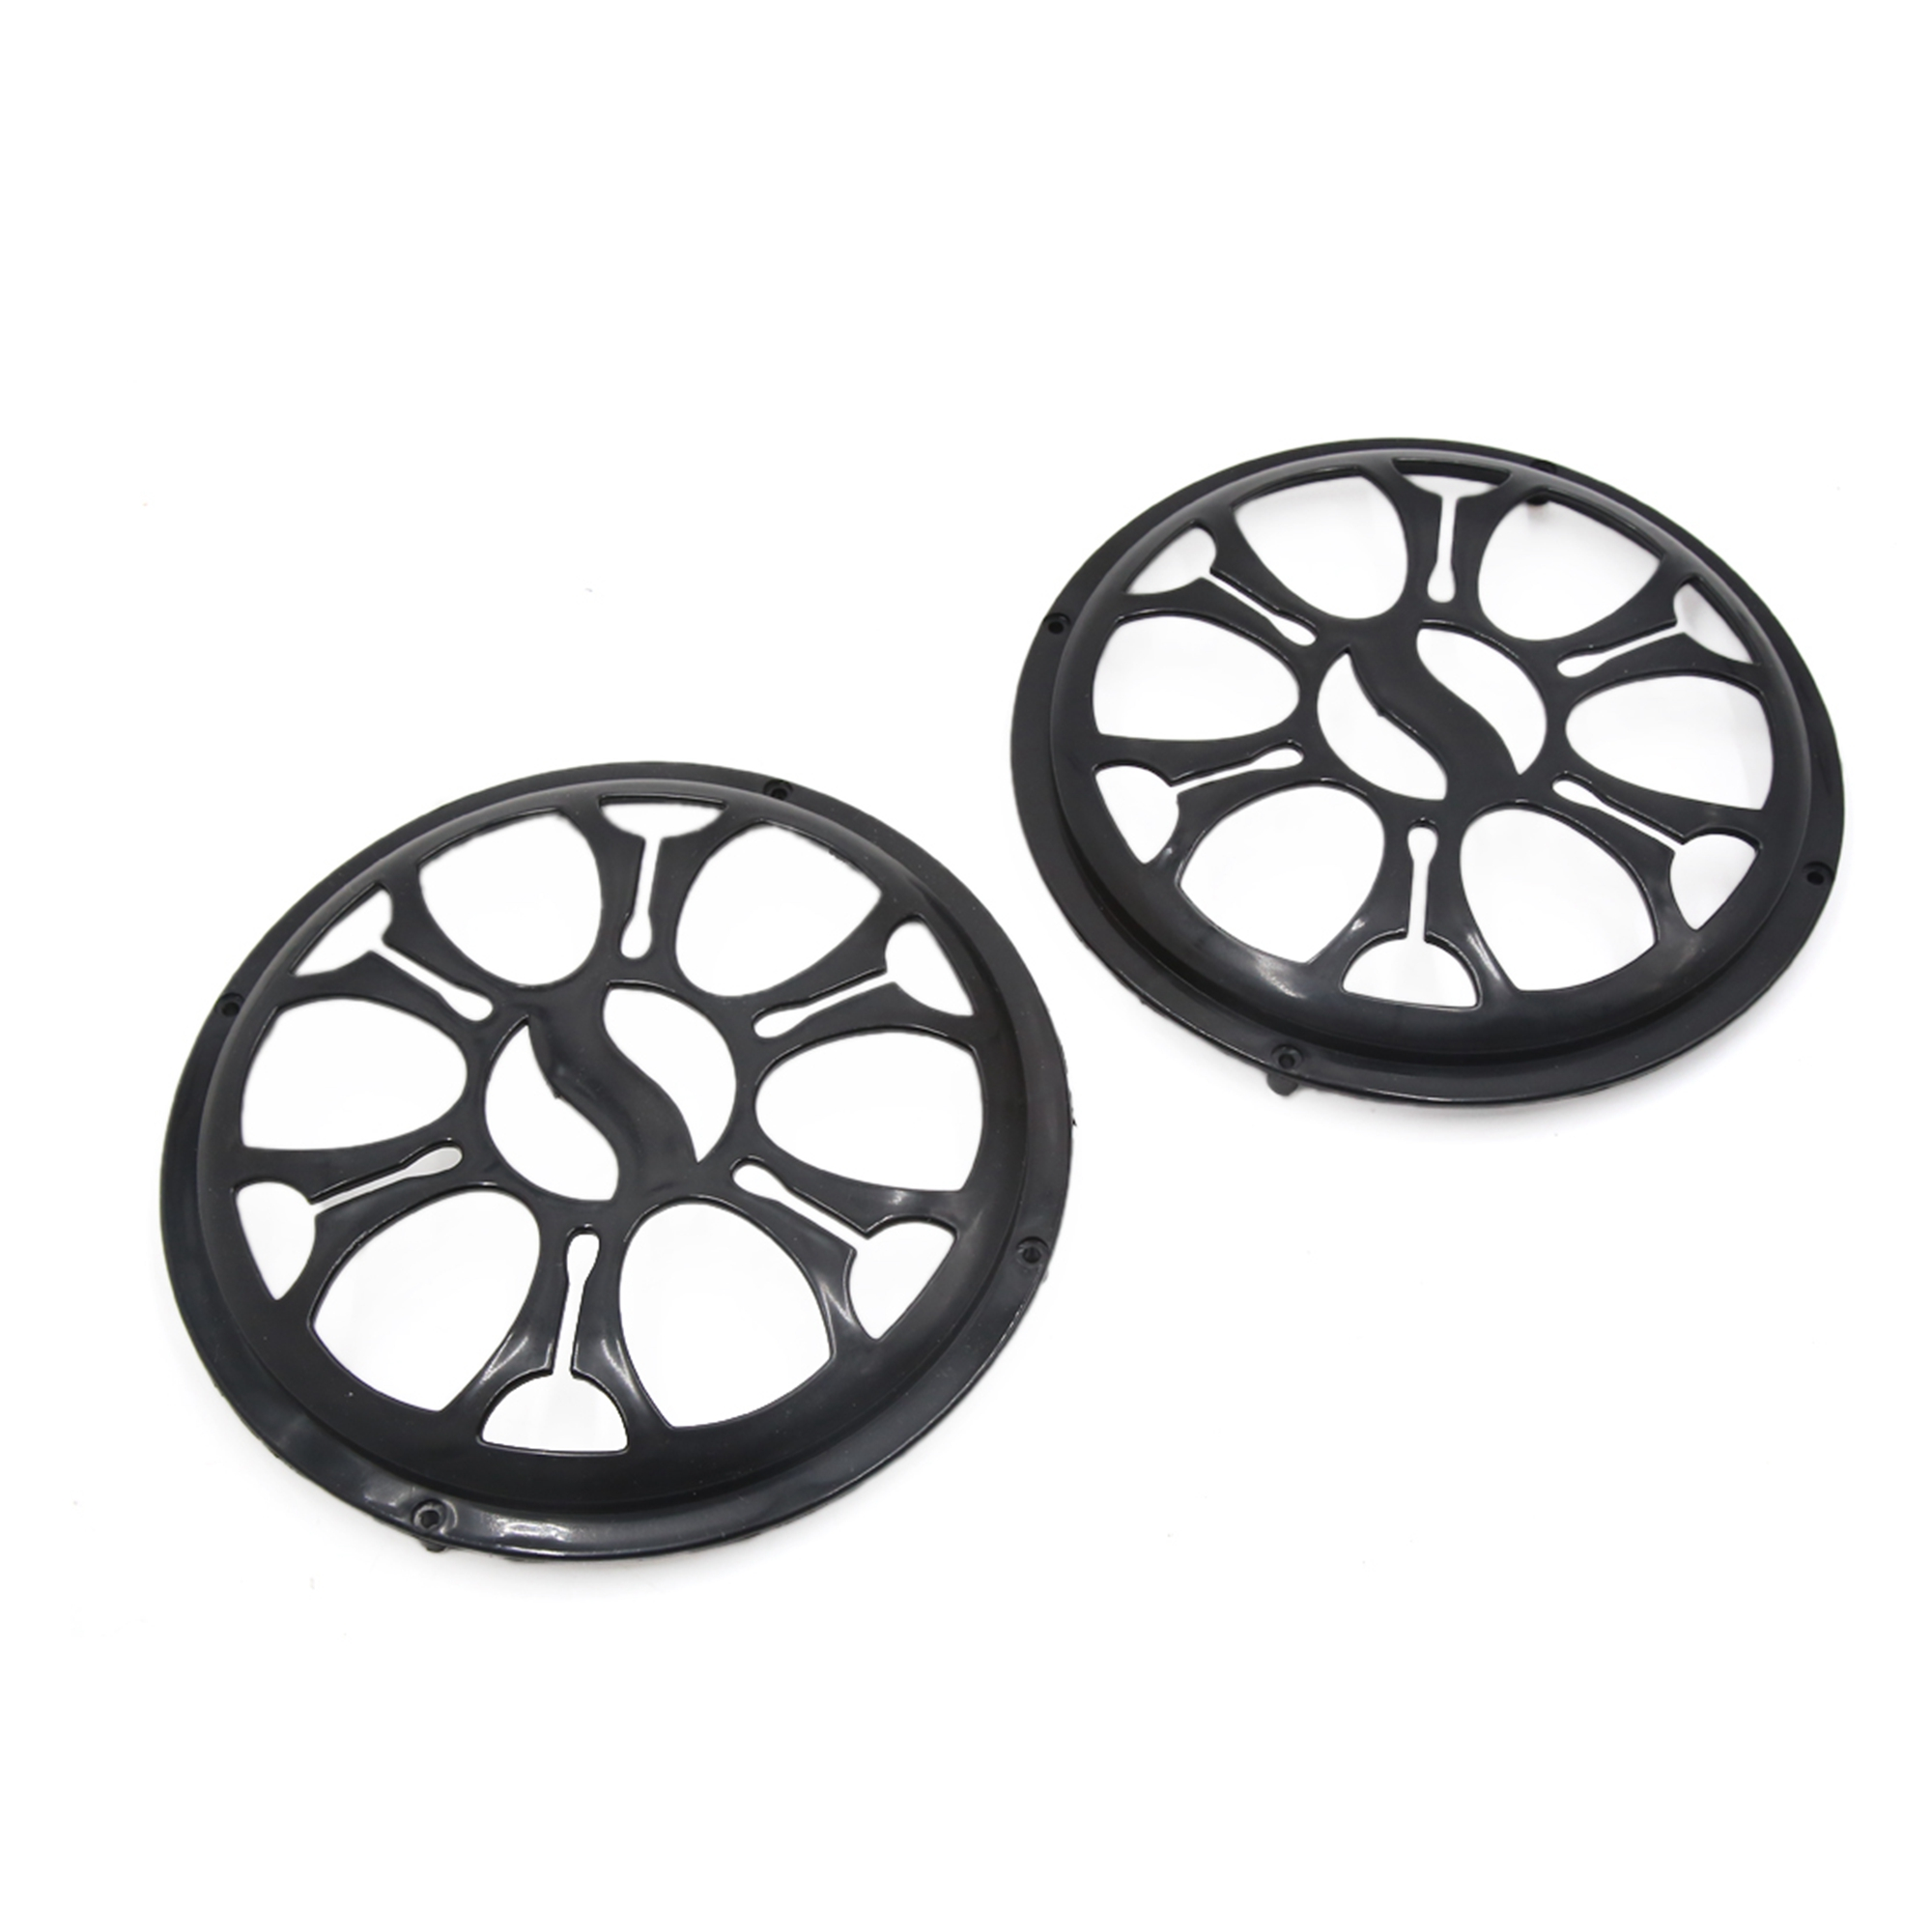 "2 Pcs 8"" Dia Black Plastic Audio Speaker Subwoofer Dust Cover Protector for Auto Car"